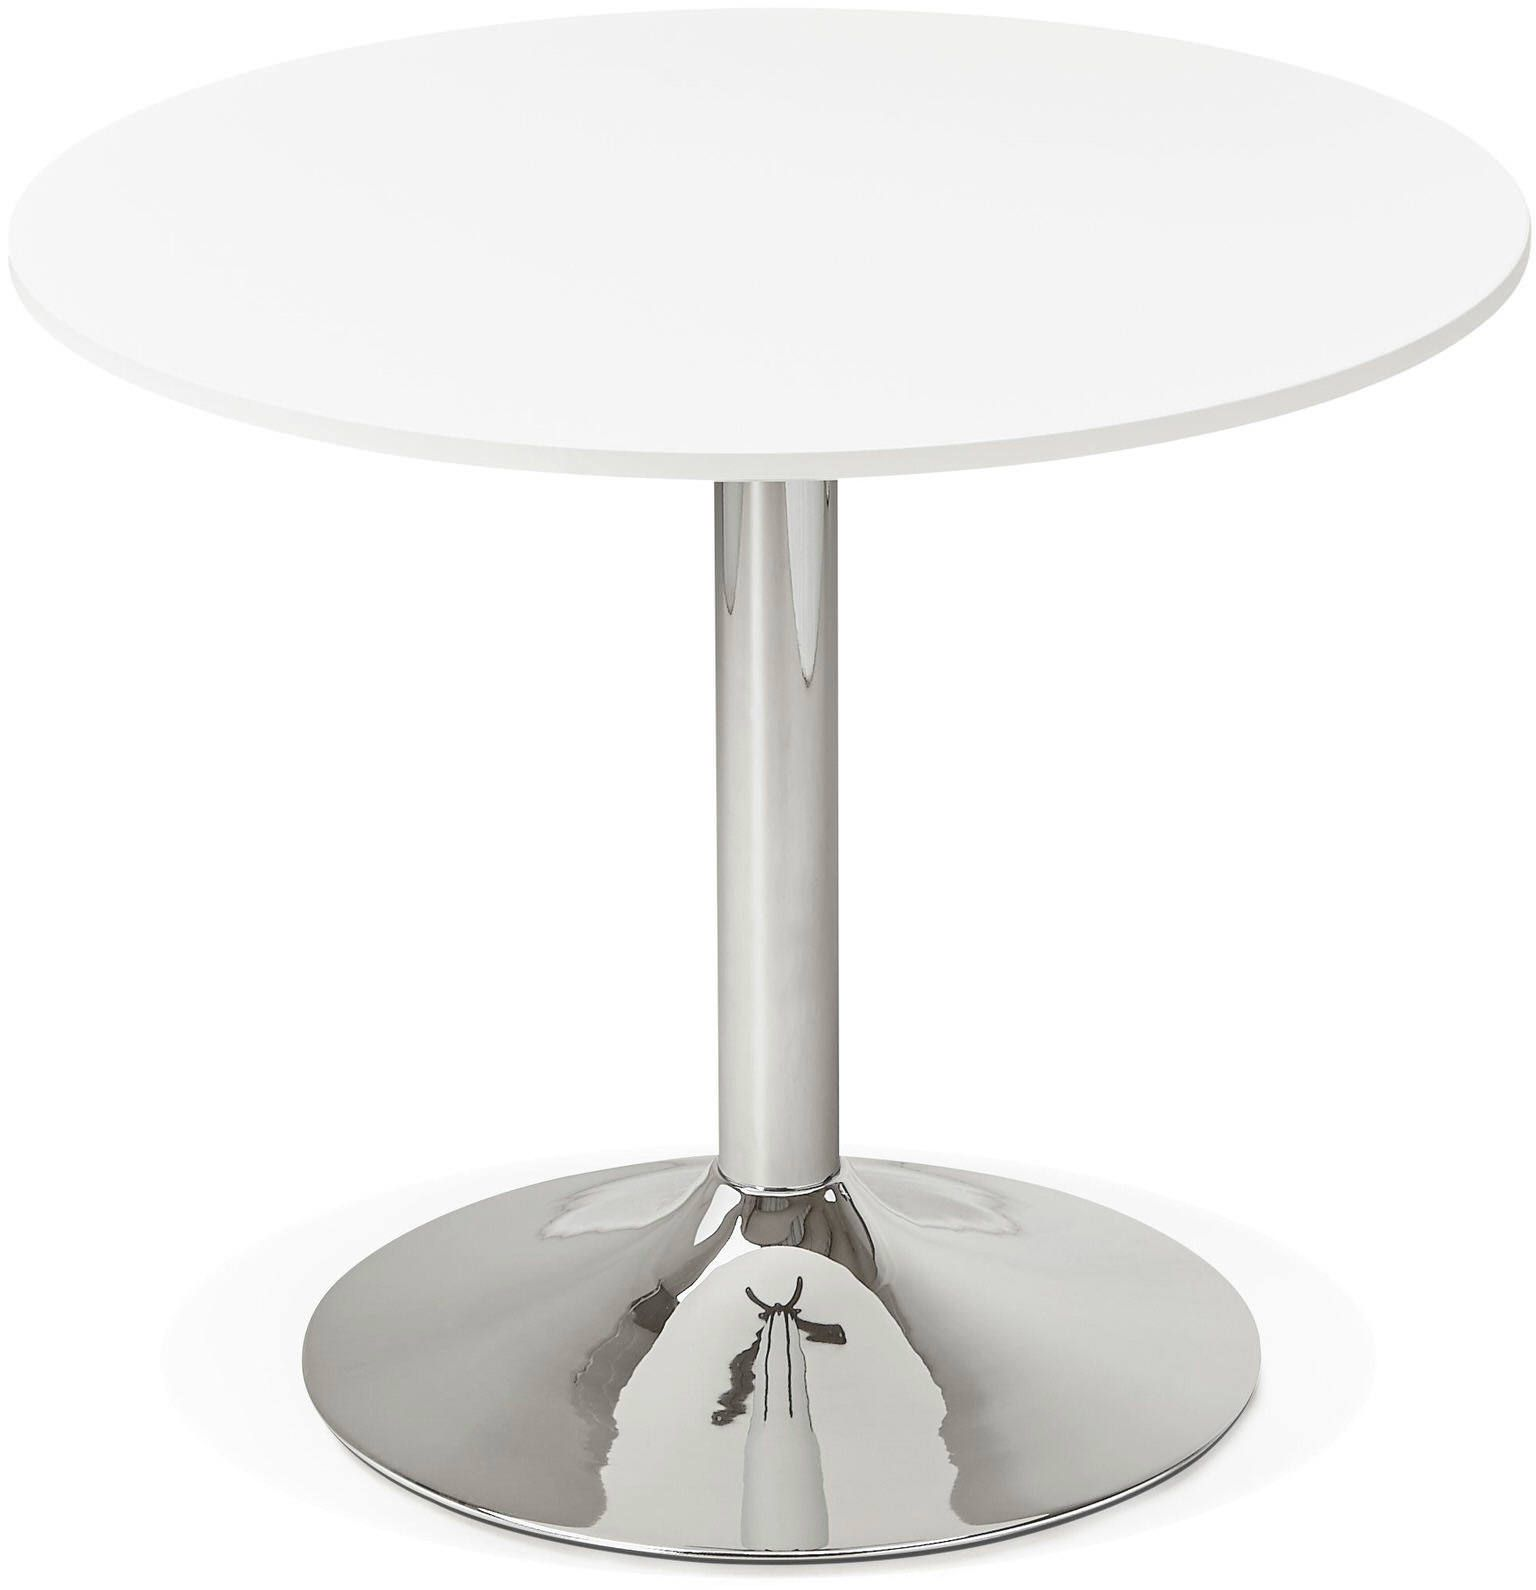 Table Ronde Bois Blanc Table Design Radon Kokoon Design Blanc